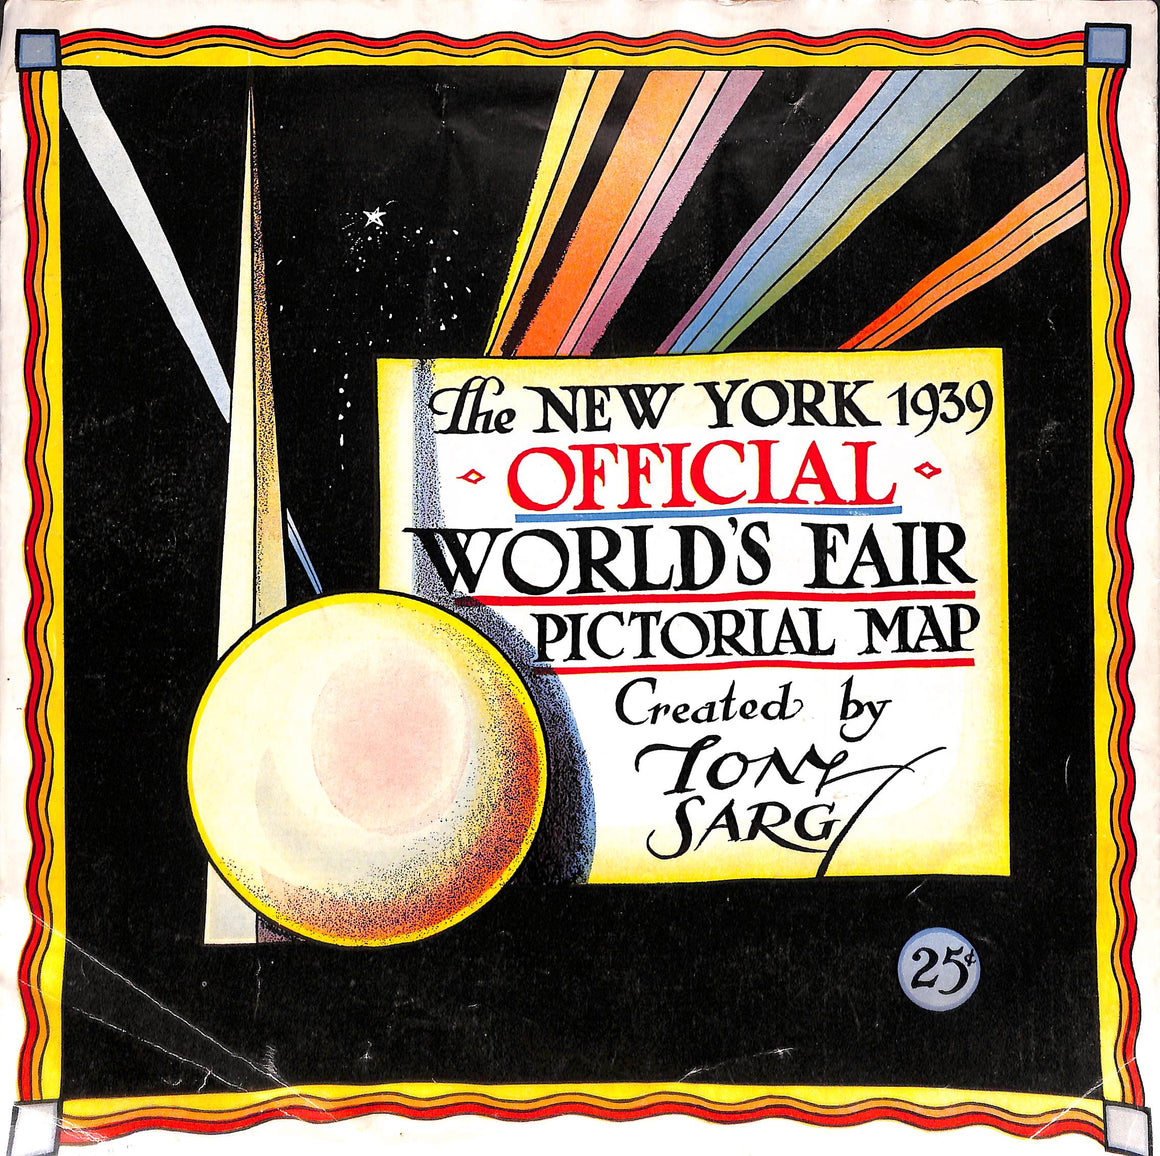 The New York 1939 Official World's Fair Pictorial Map